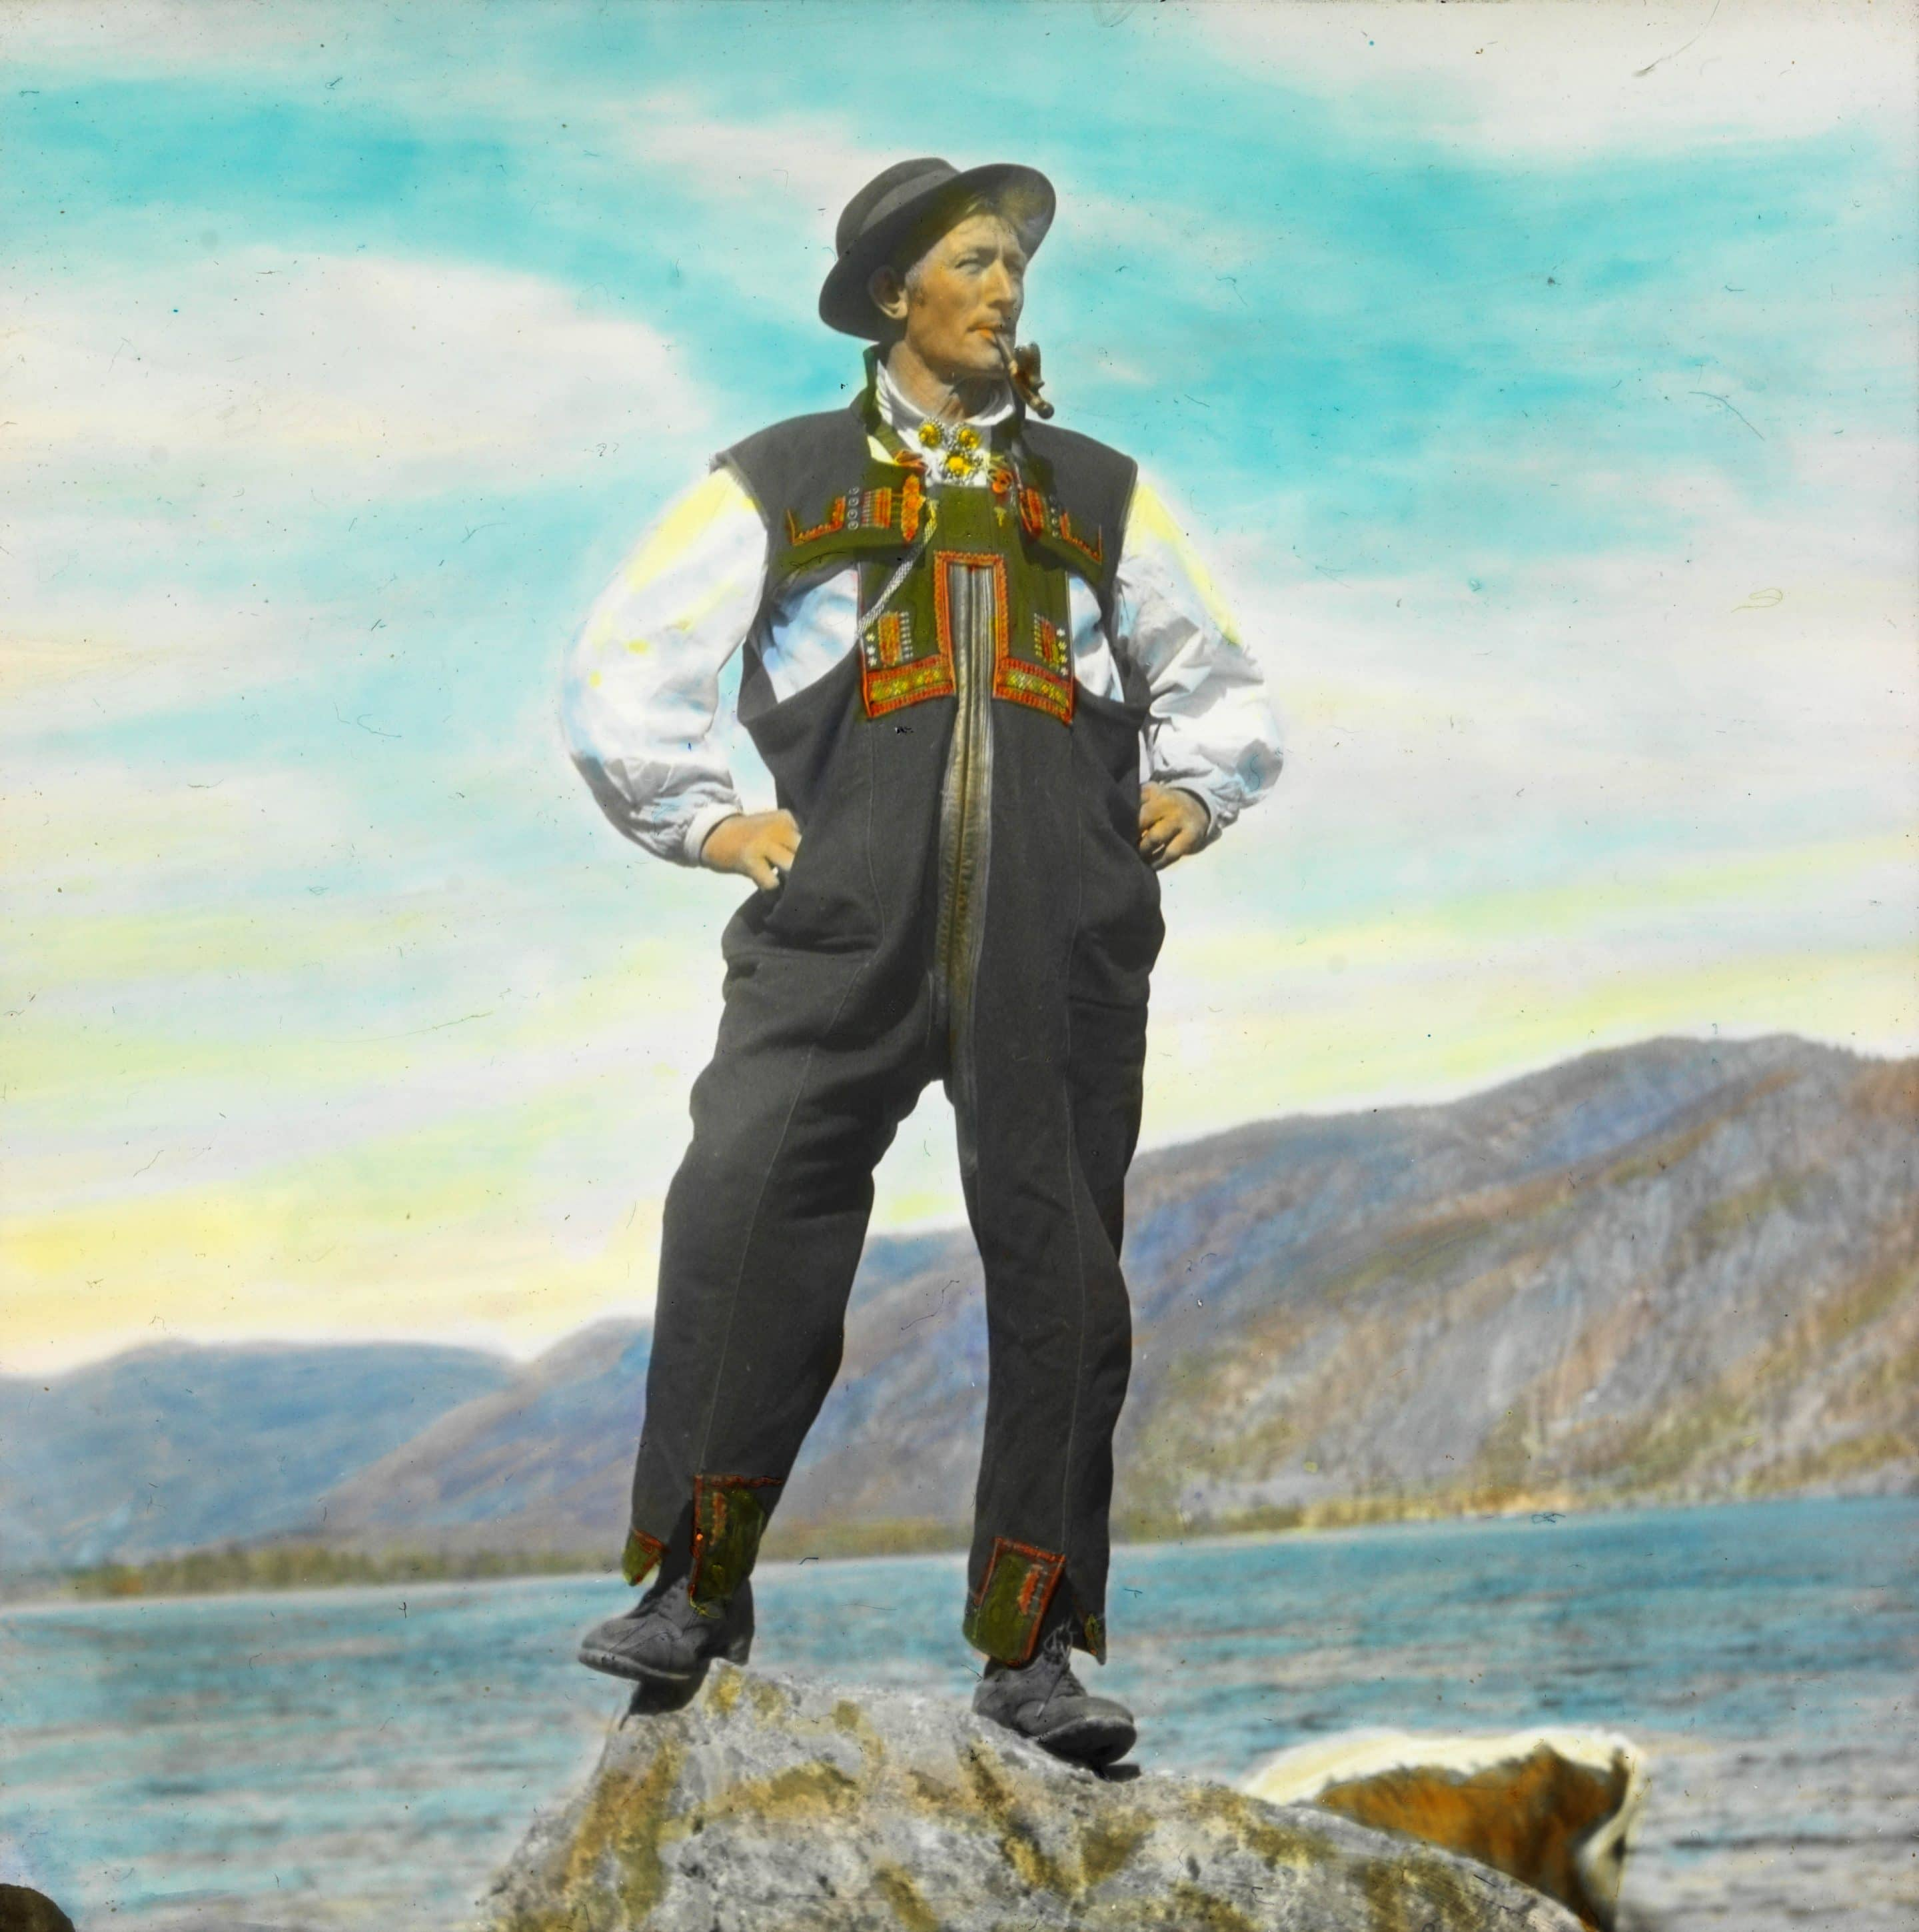 Mouth-harp-maker and musician Mikkjel Kåvenes (1872-1939), posing in his folk costume from Setesdal, Agder, Norway in 1934. | Photo: Anders Beer Wilse - digitaltmuseum.no DEX_W_00232 - CC BY.